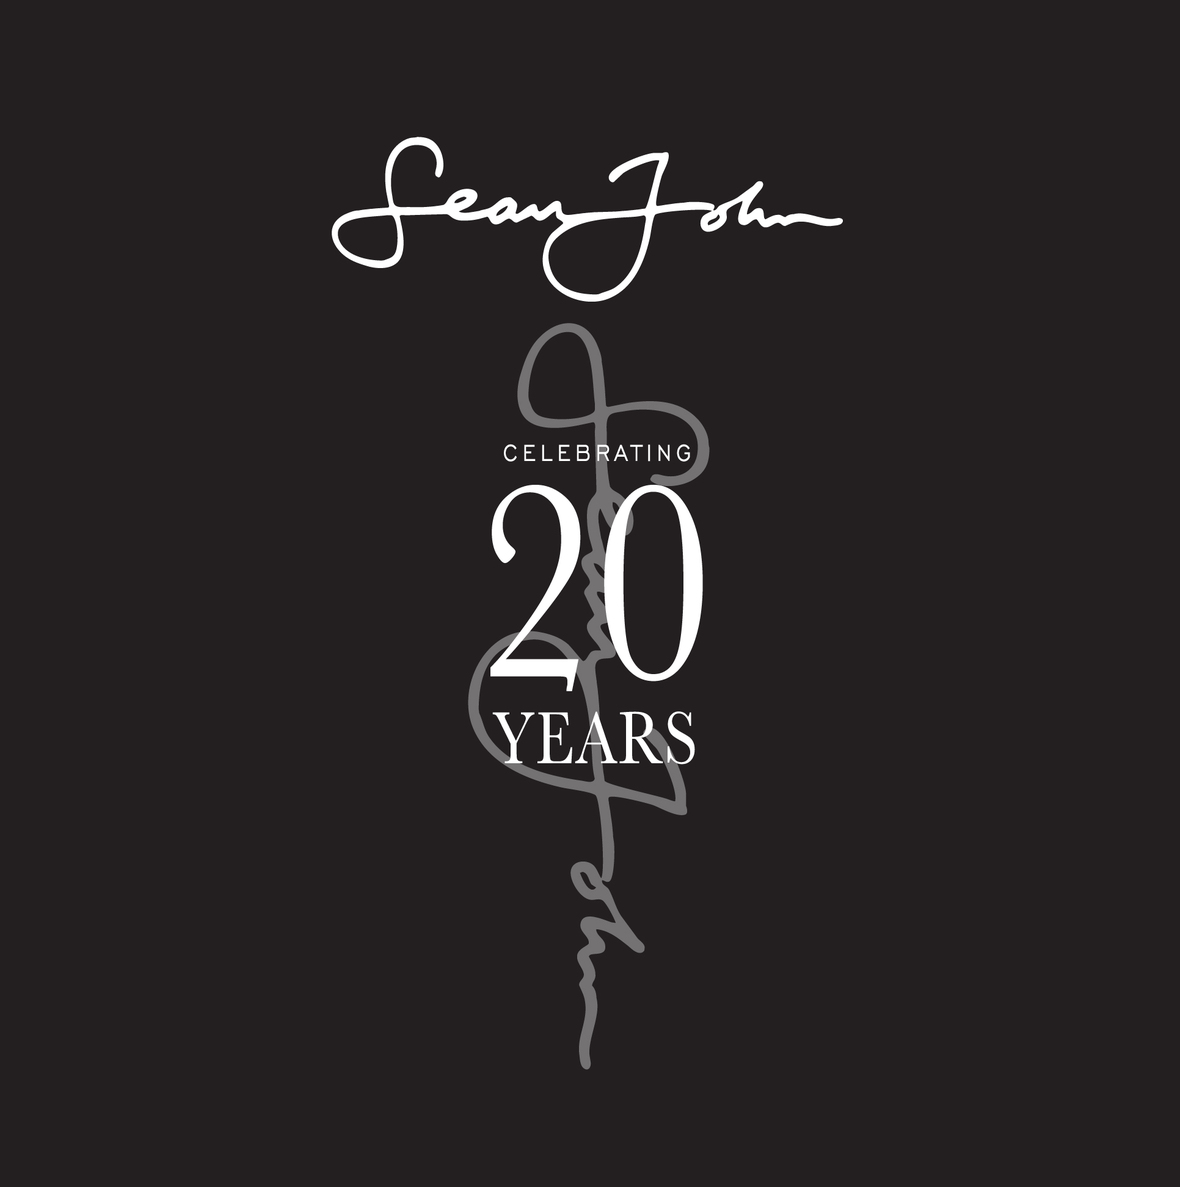 SJ CELEBRATING20 YEARS SIG